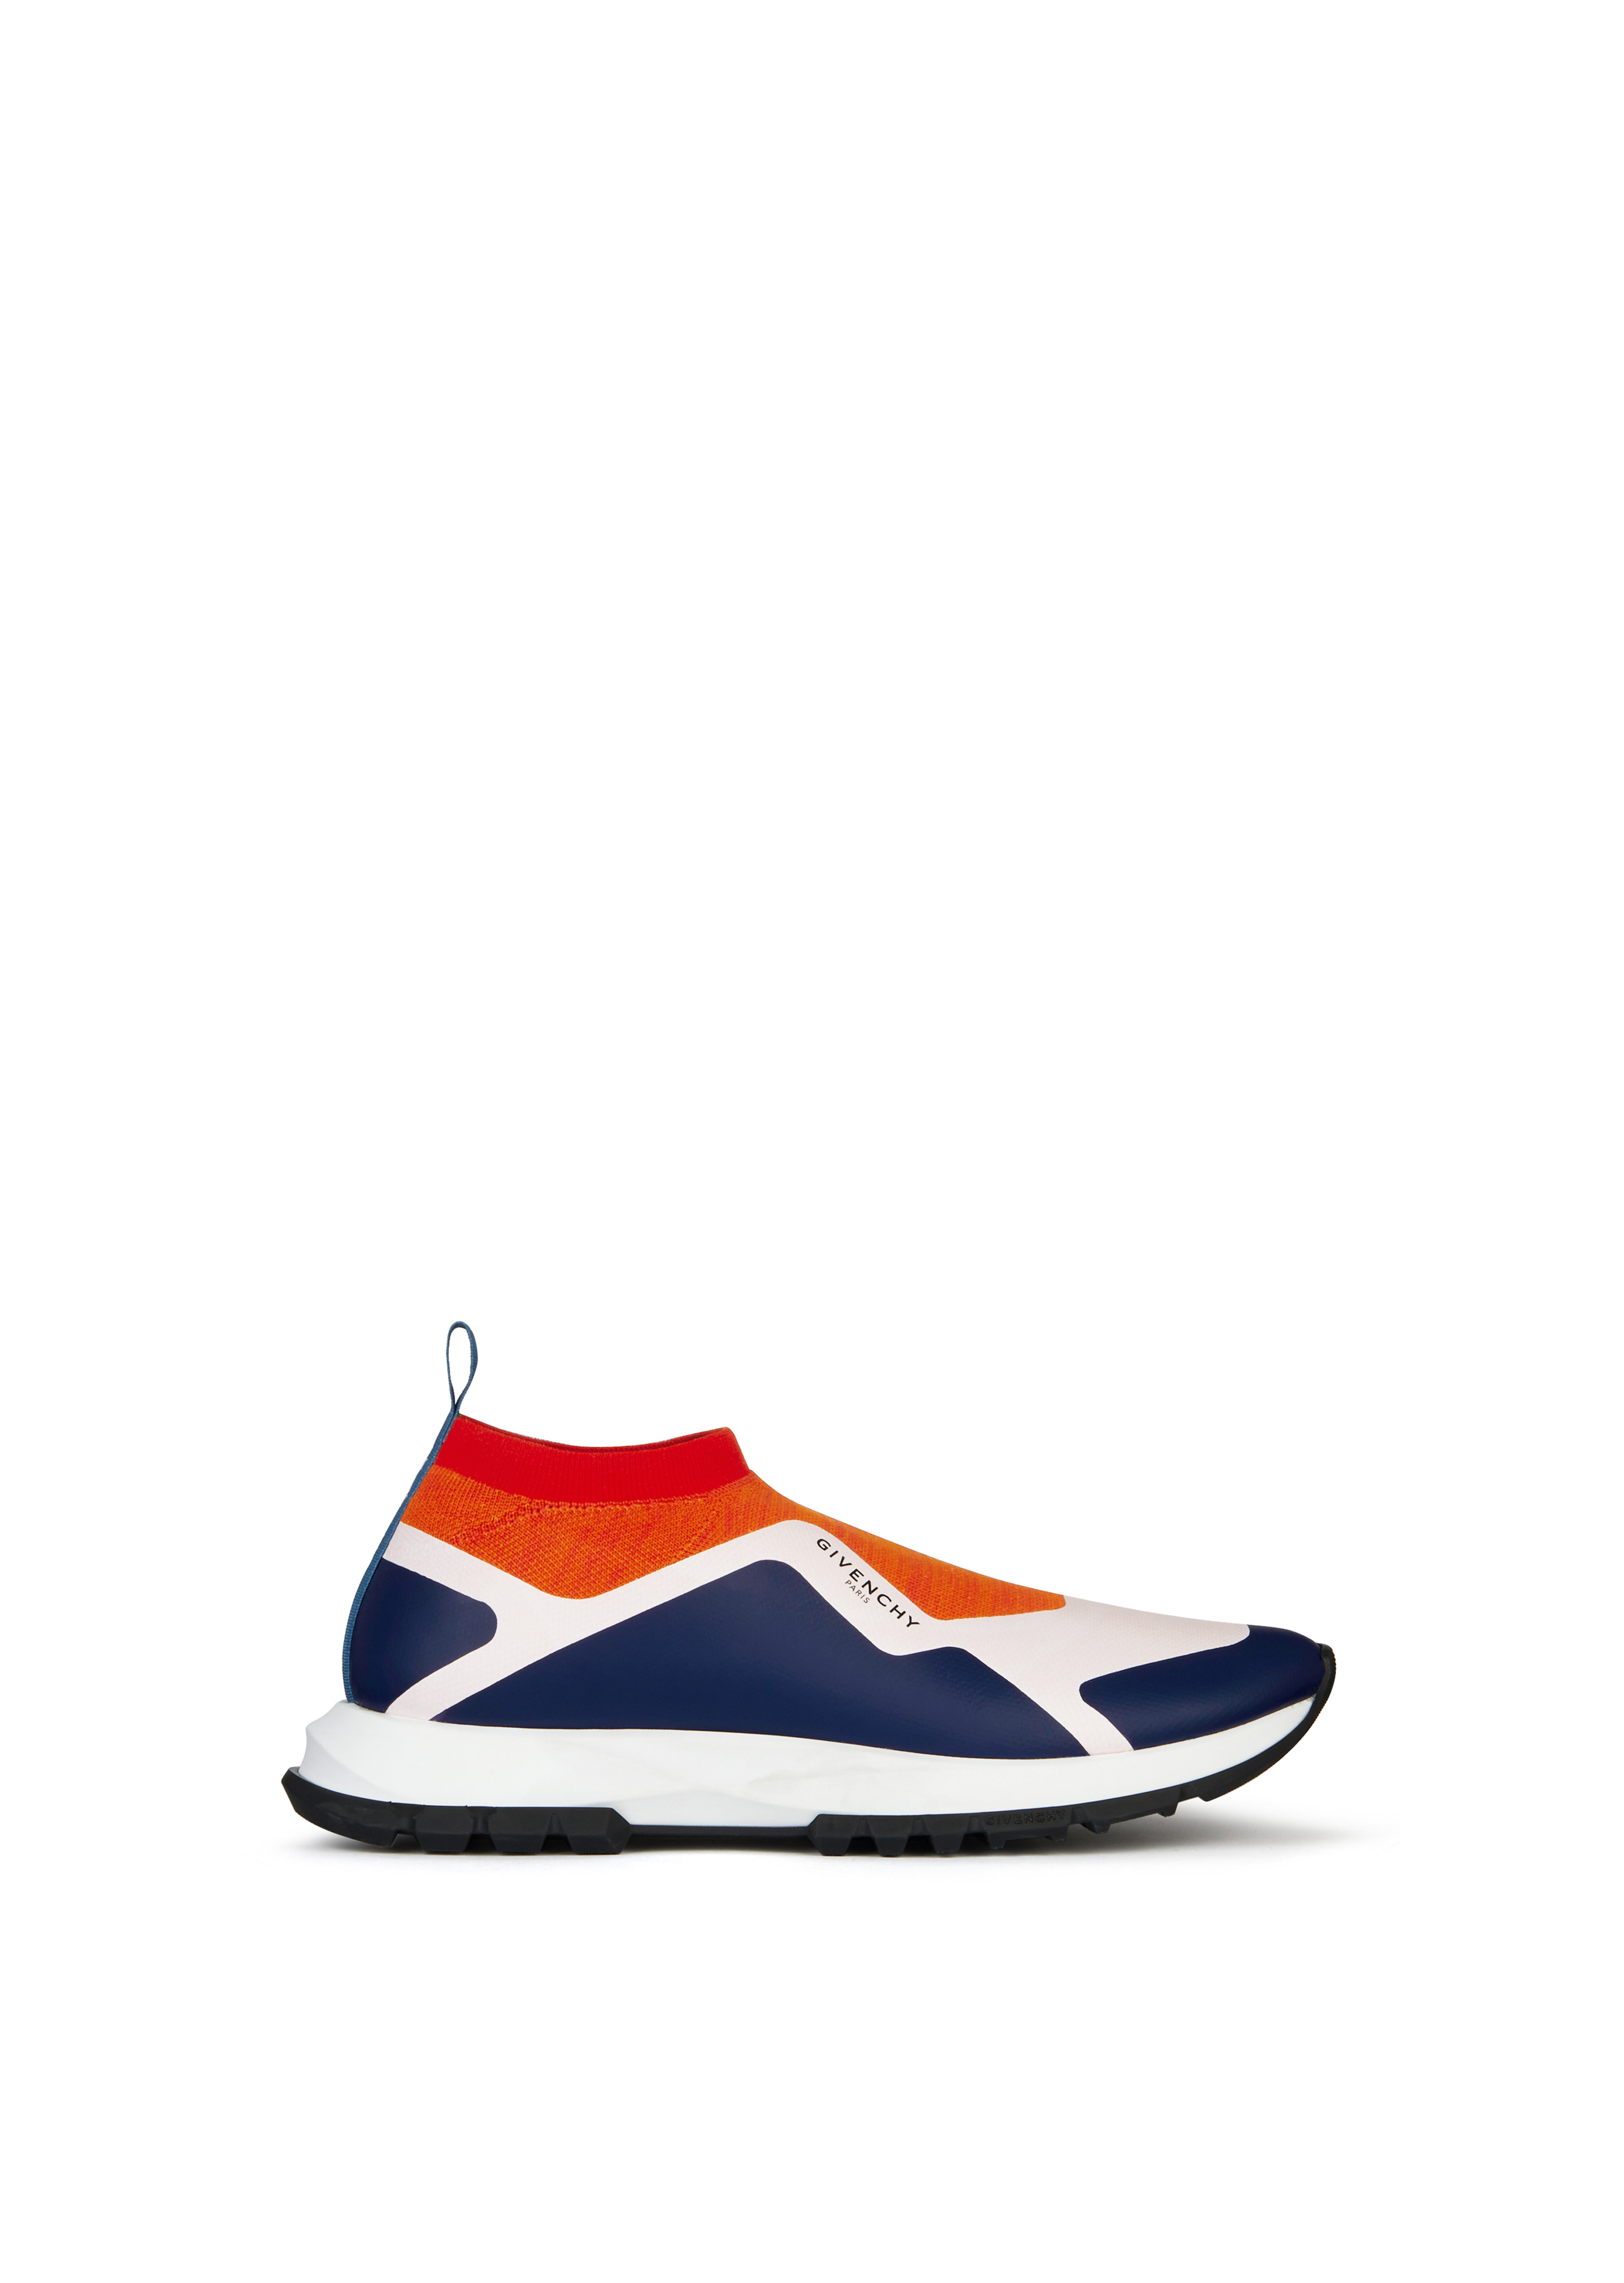 Givenchy SS20 SpectreSneakers_11